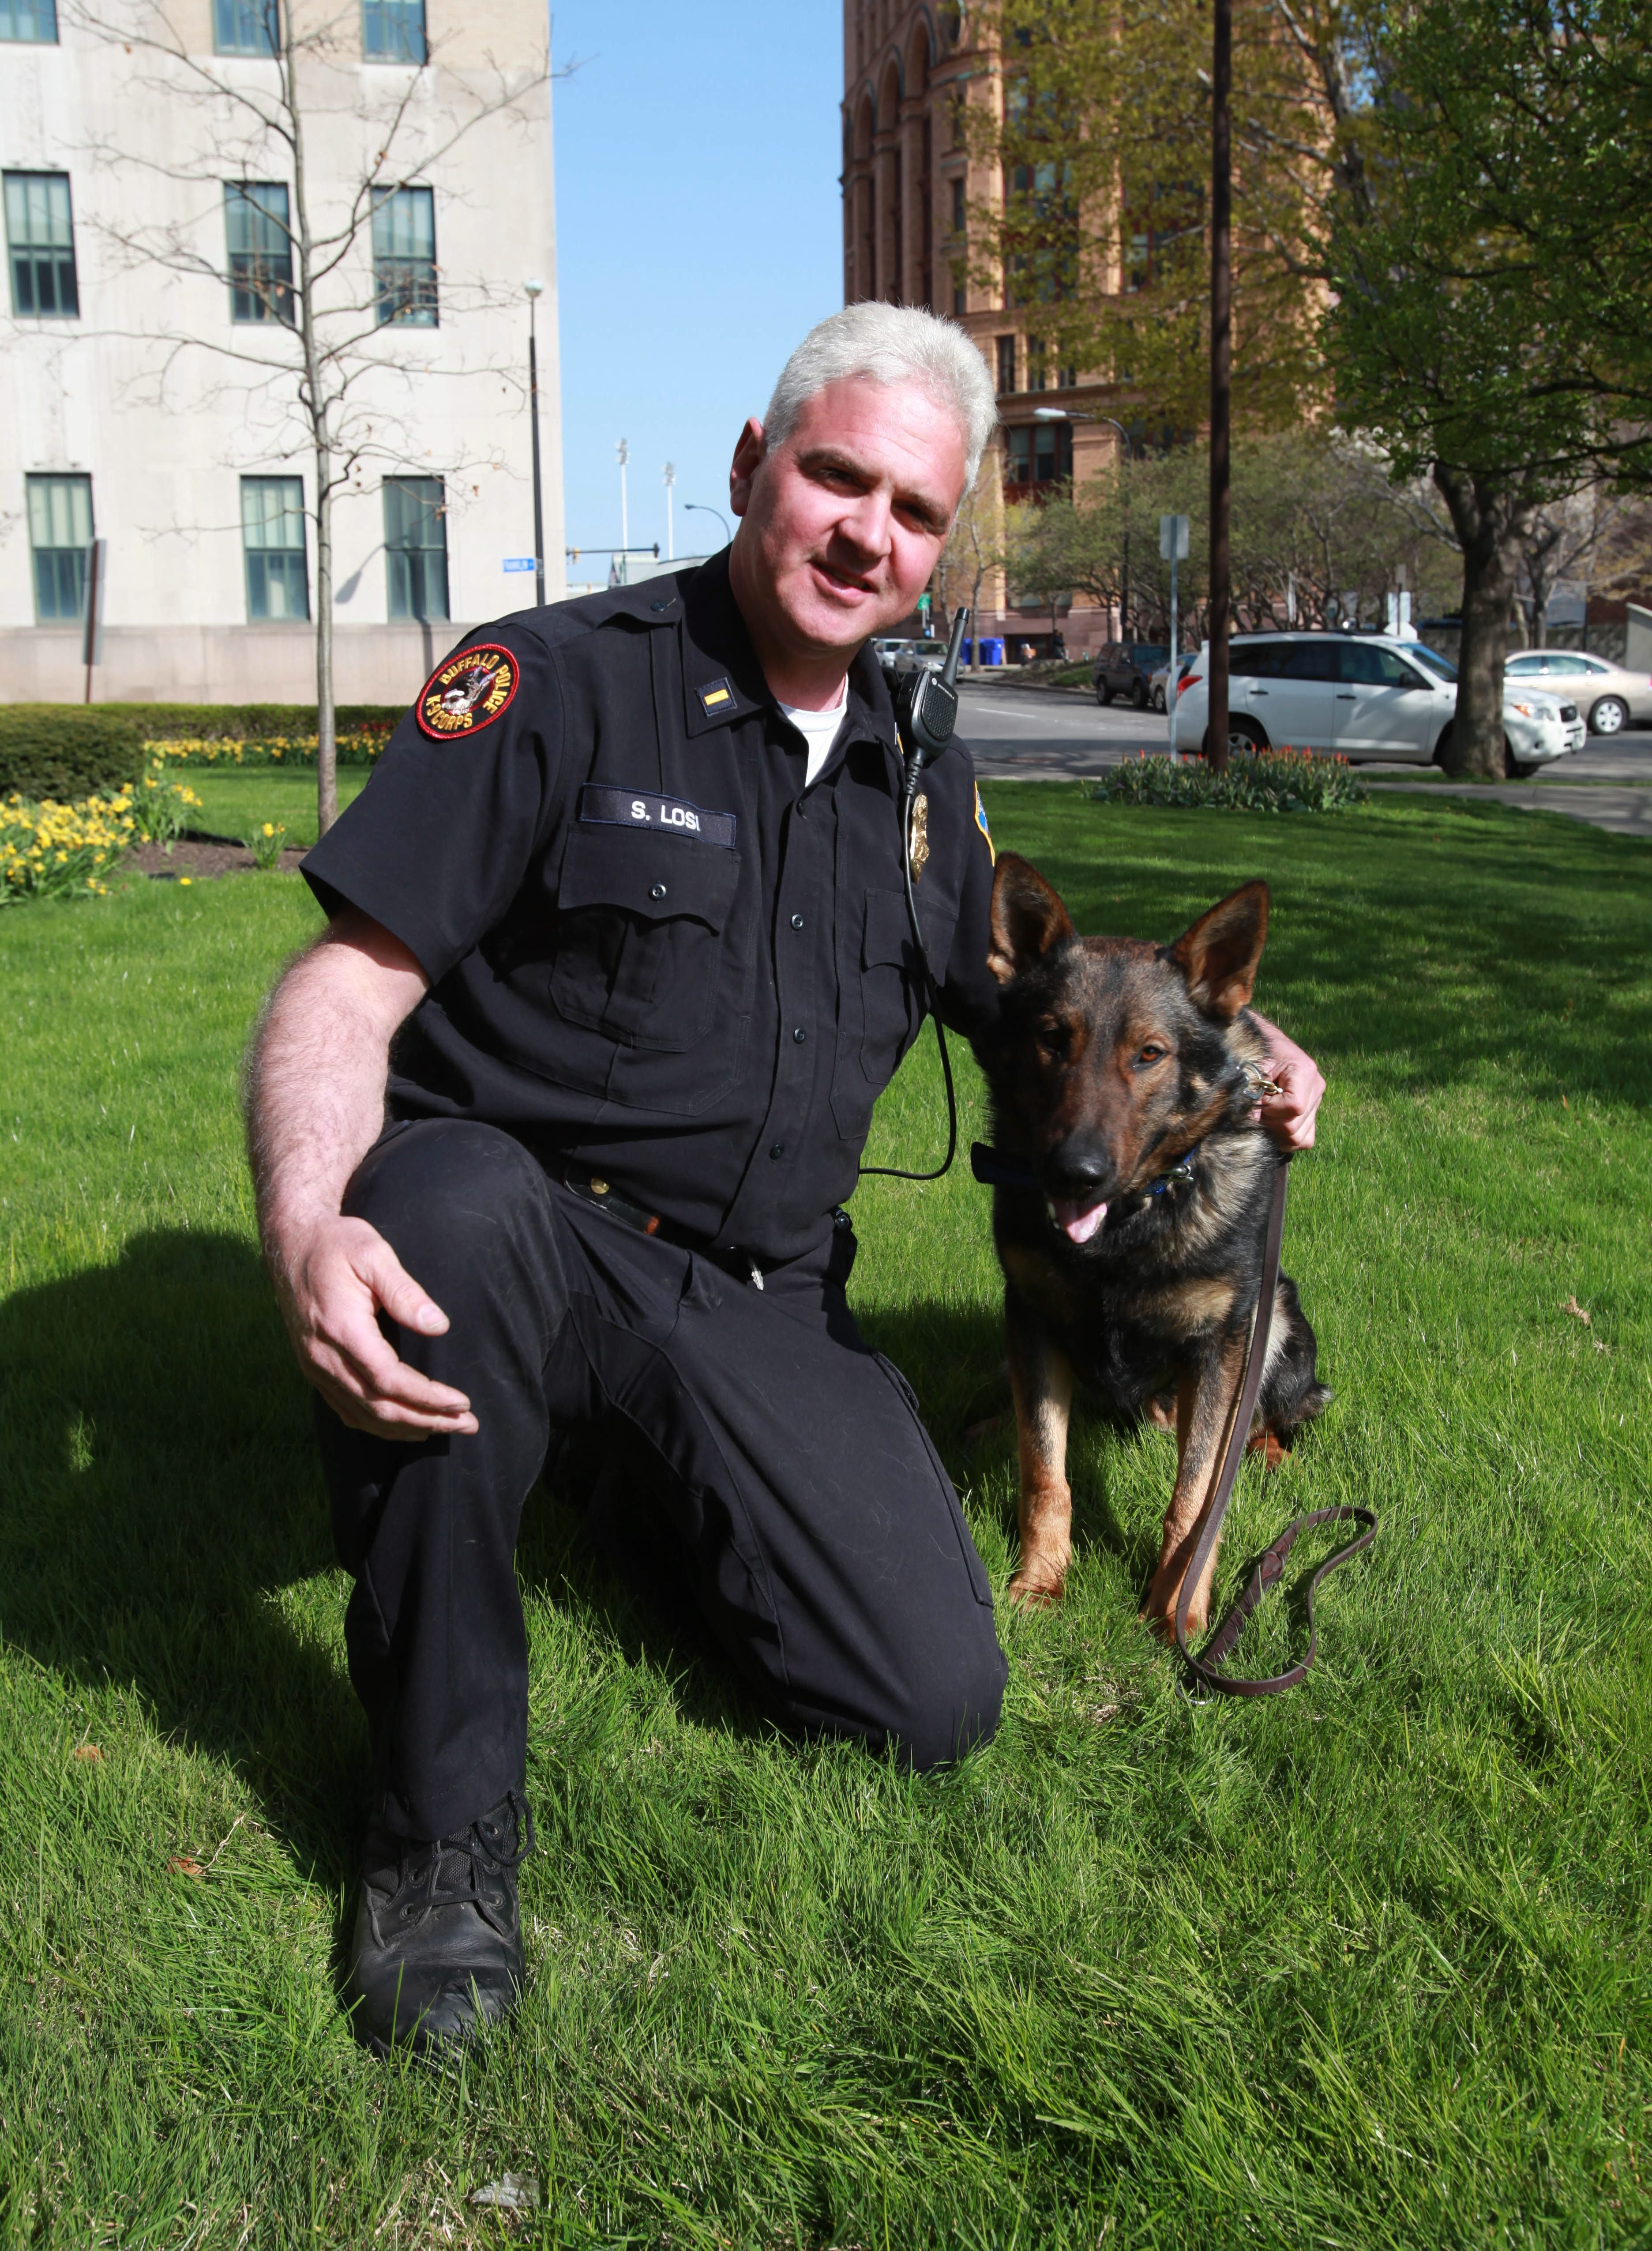 Lt. Salvatore Losi with Thor, who tracked a burglary suspect in Ontario, and K-9 Officer Mary Ellen Sawicki with Herc, who assisted.